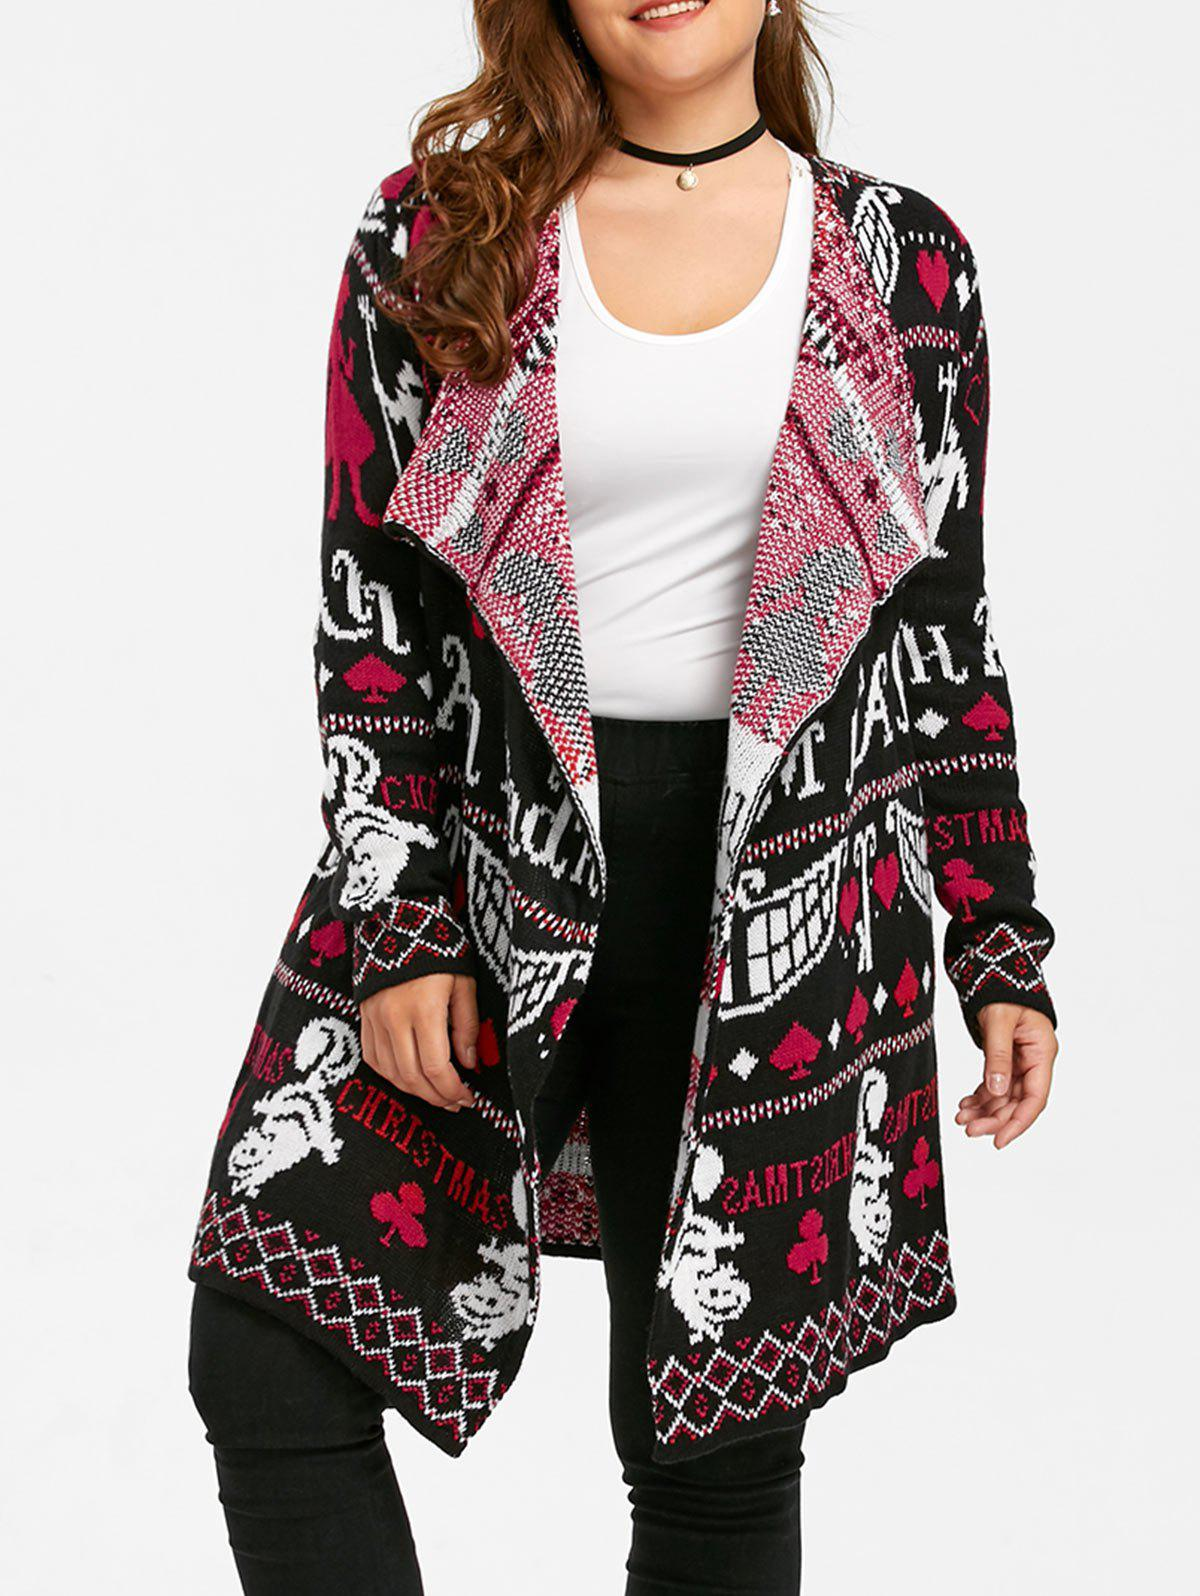 Ugly Christmas Plus Size Sweater Drape CardiganWOMEN<br><br>Size: 5XL; Color: BLACK&amp;RED; Type: Cardigans; Material: Polyester,Spandex; Sleeve Length: Full; Collar: Collarless; Style: Fashion; Season: Fall,Winter; Pattern Type: Others; Weight: 0.4700kg; Package Contents: 1 x Cardigan;